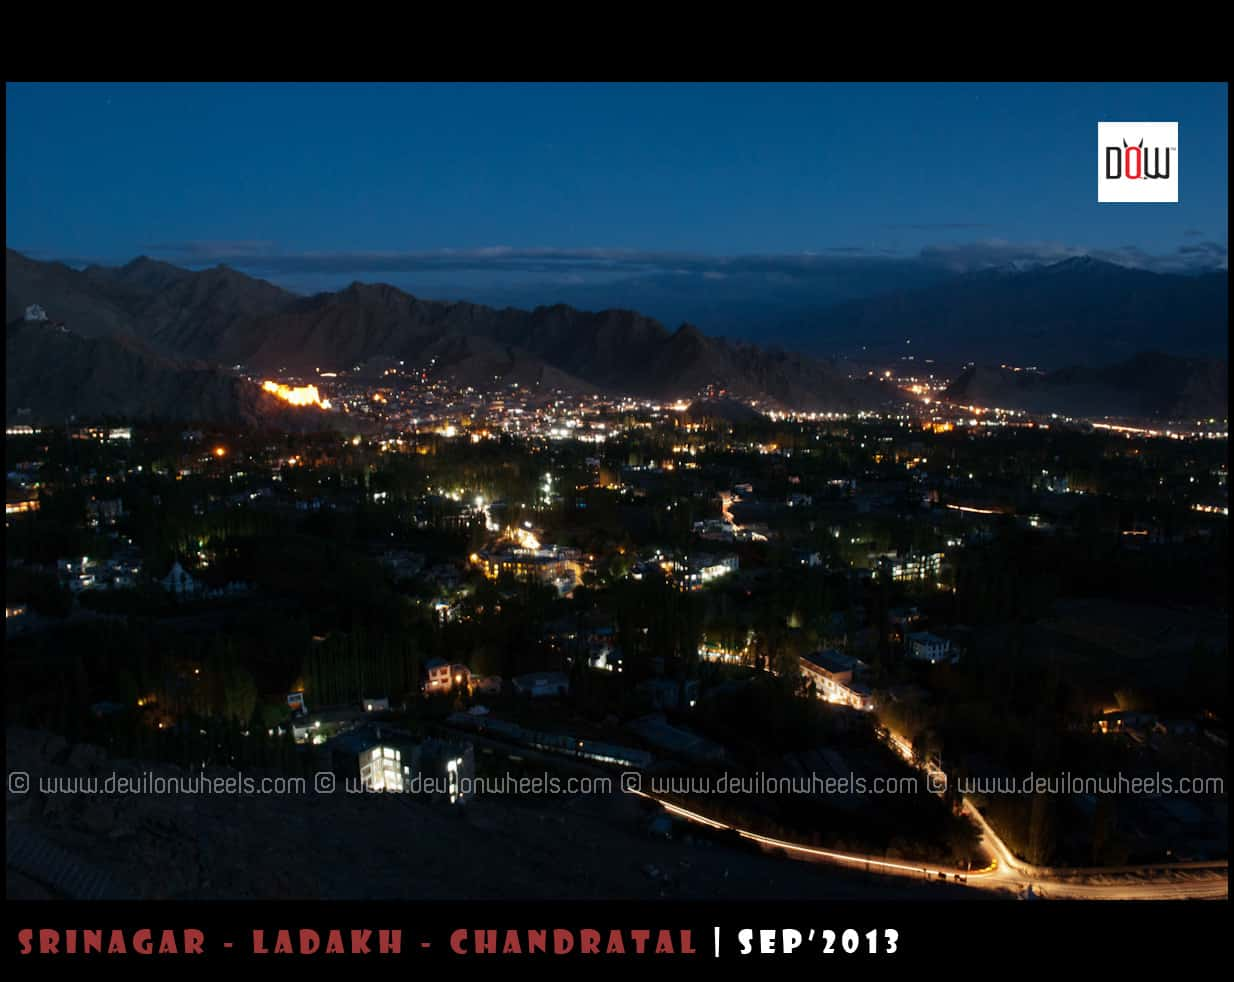 Leh City at Night as seen from Shanti Stupa